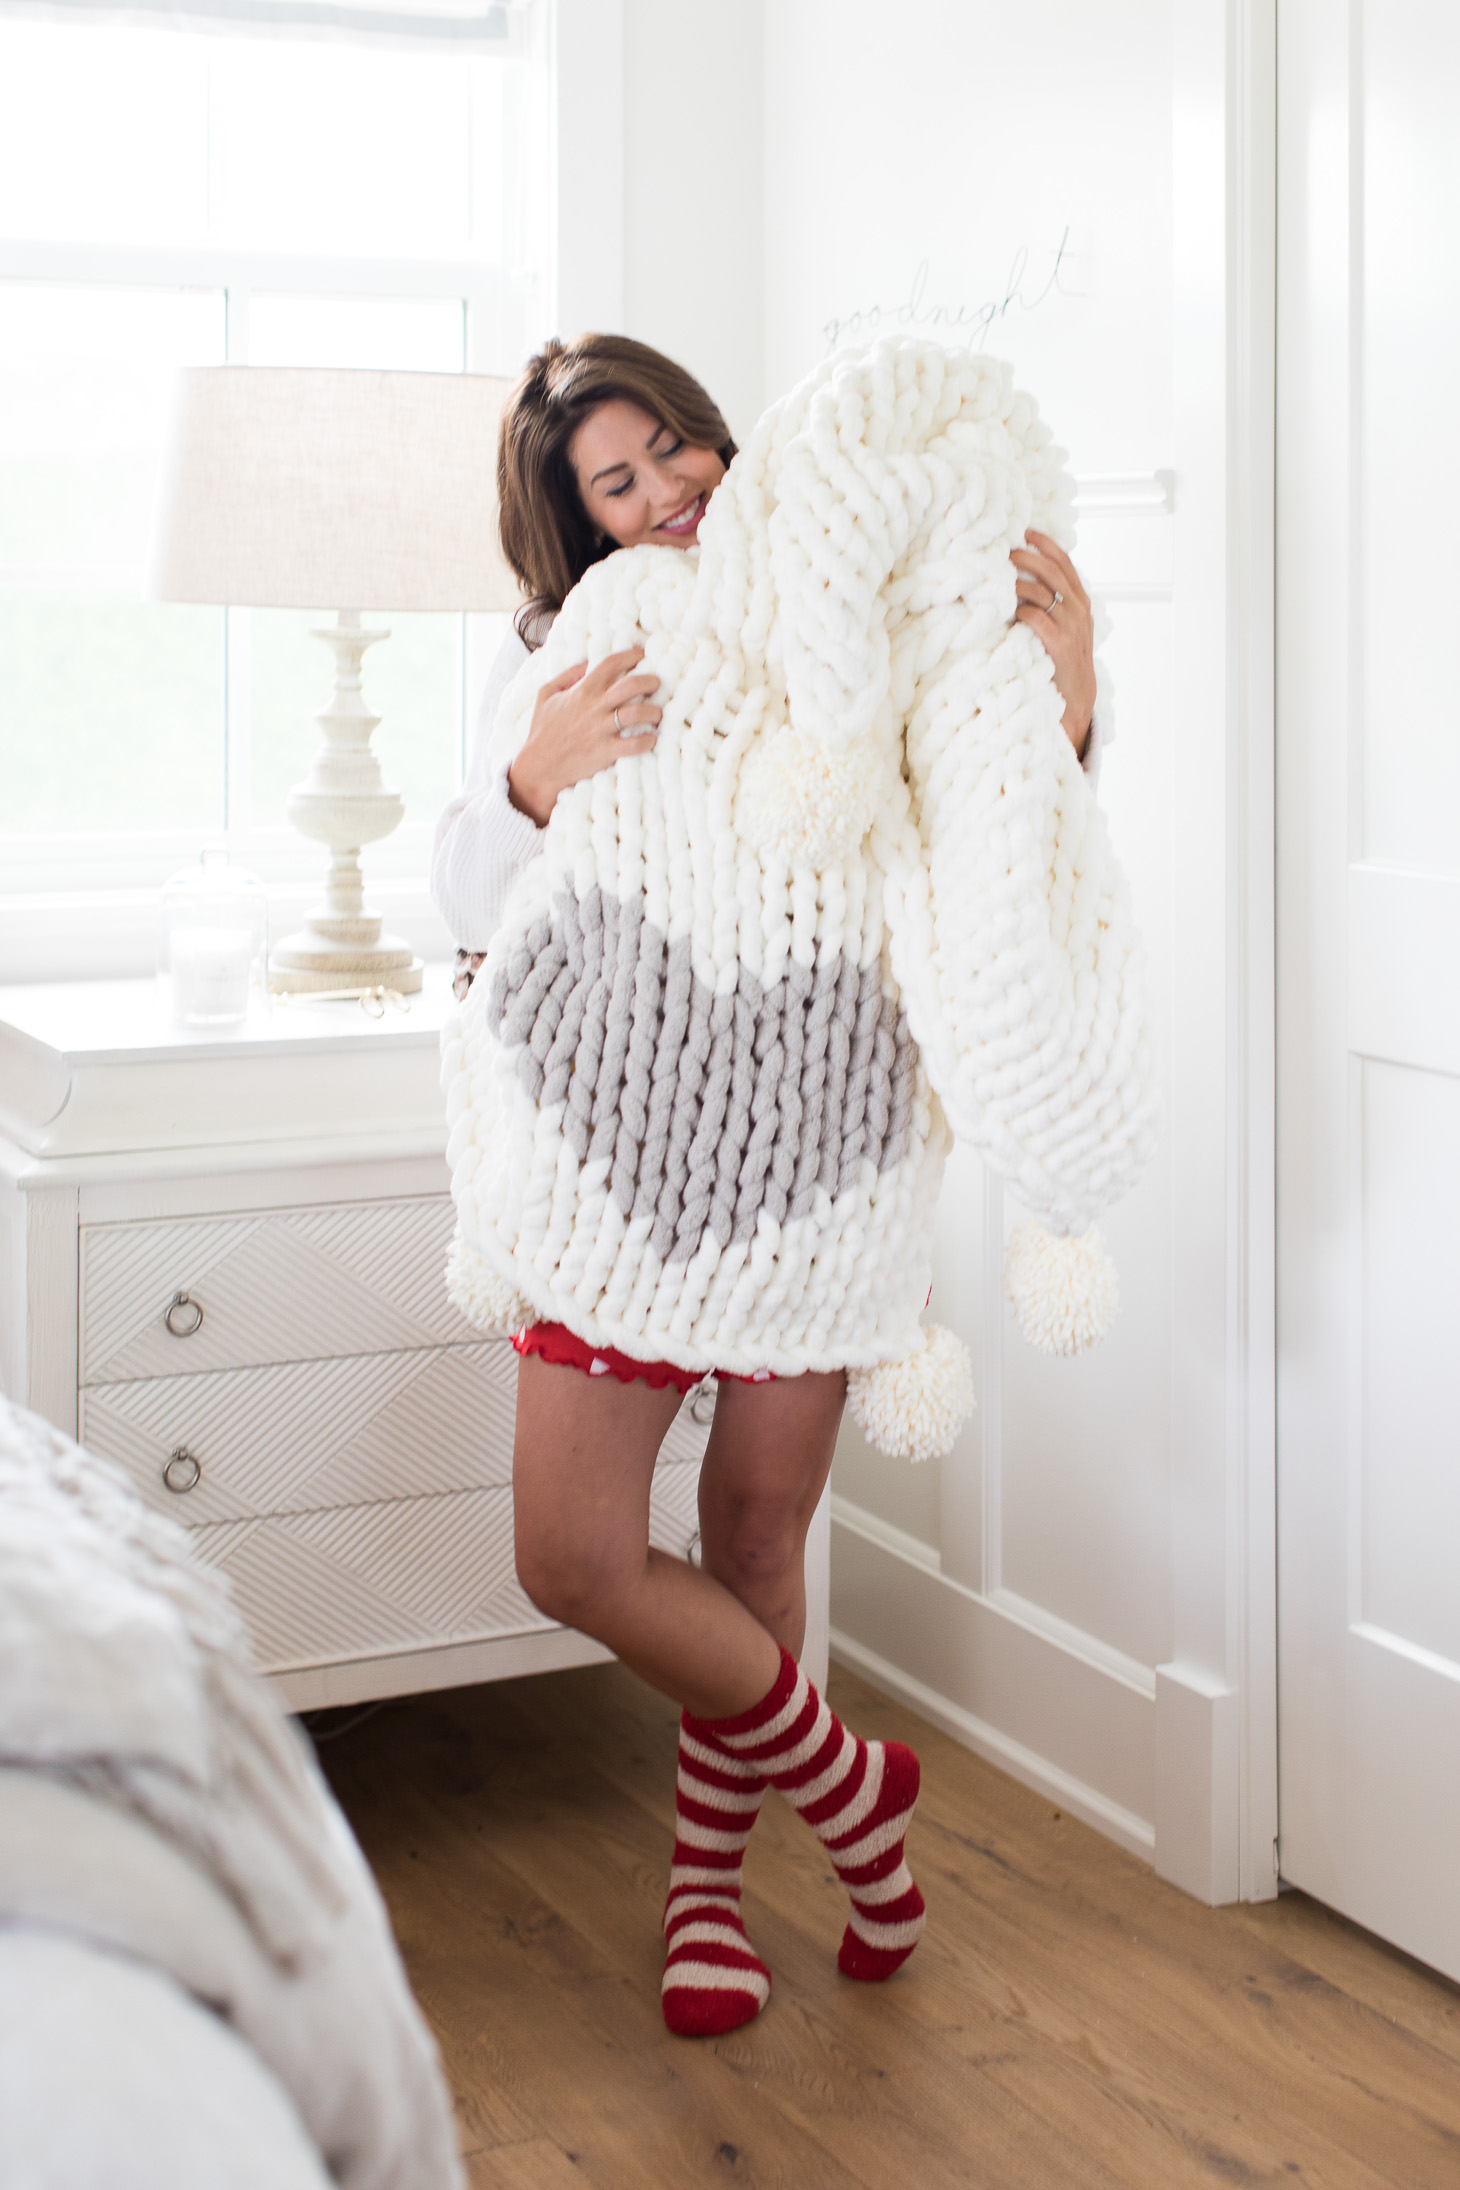 b473405e2bc8 Jillian Harris x Etsy Holiday Collection